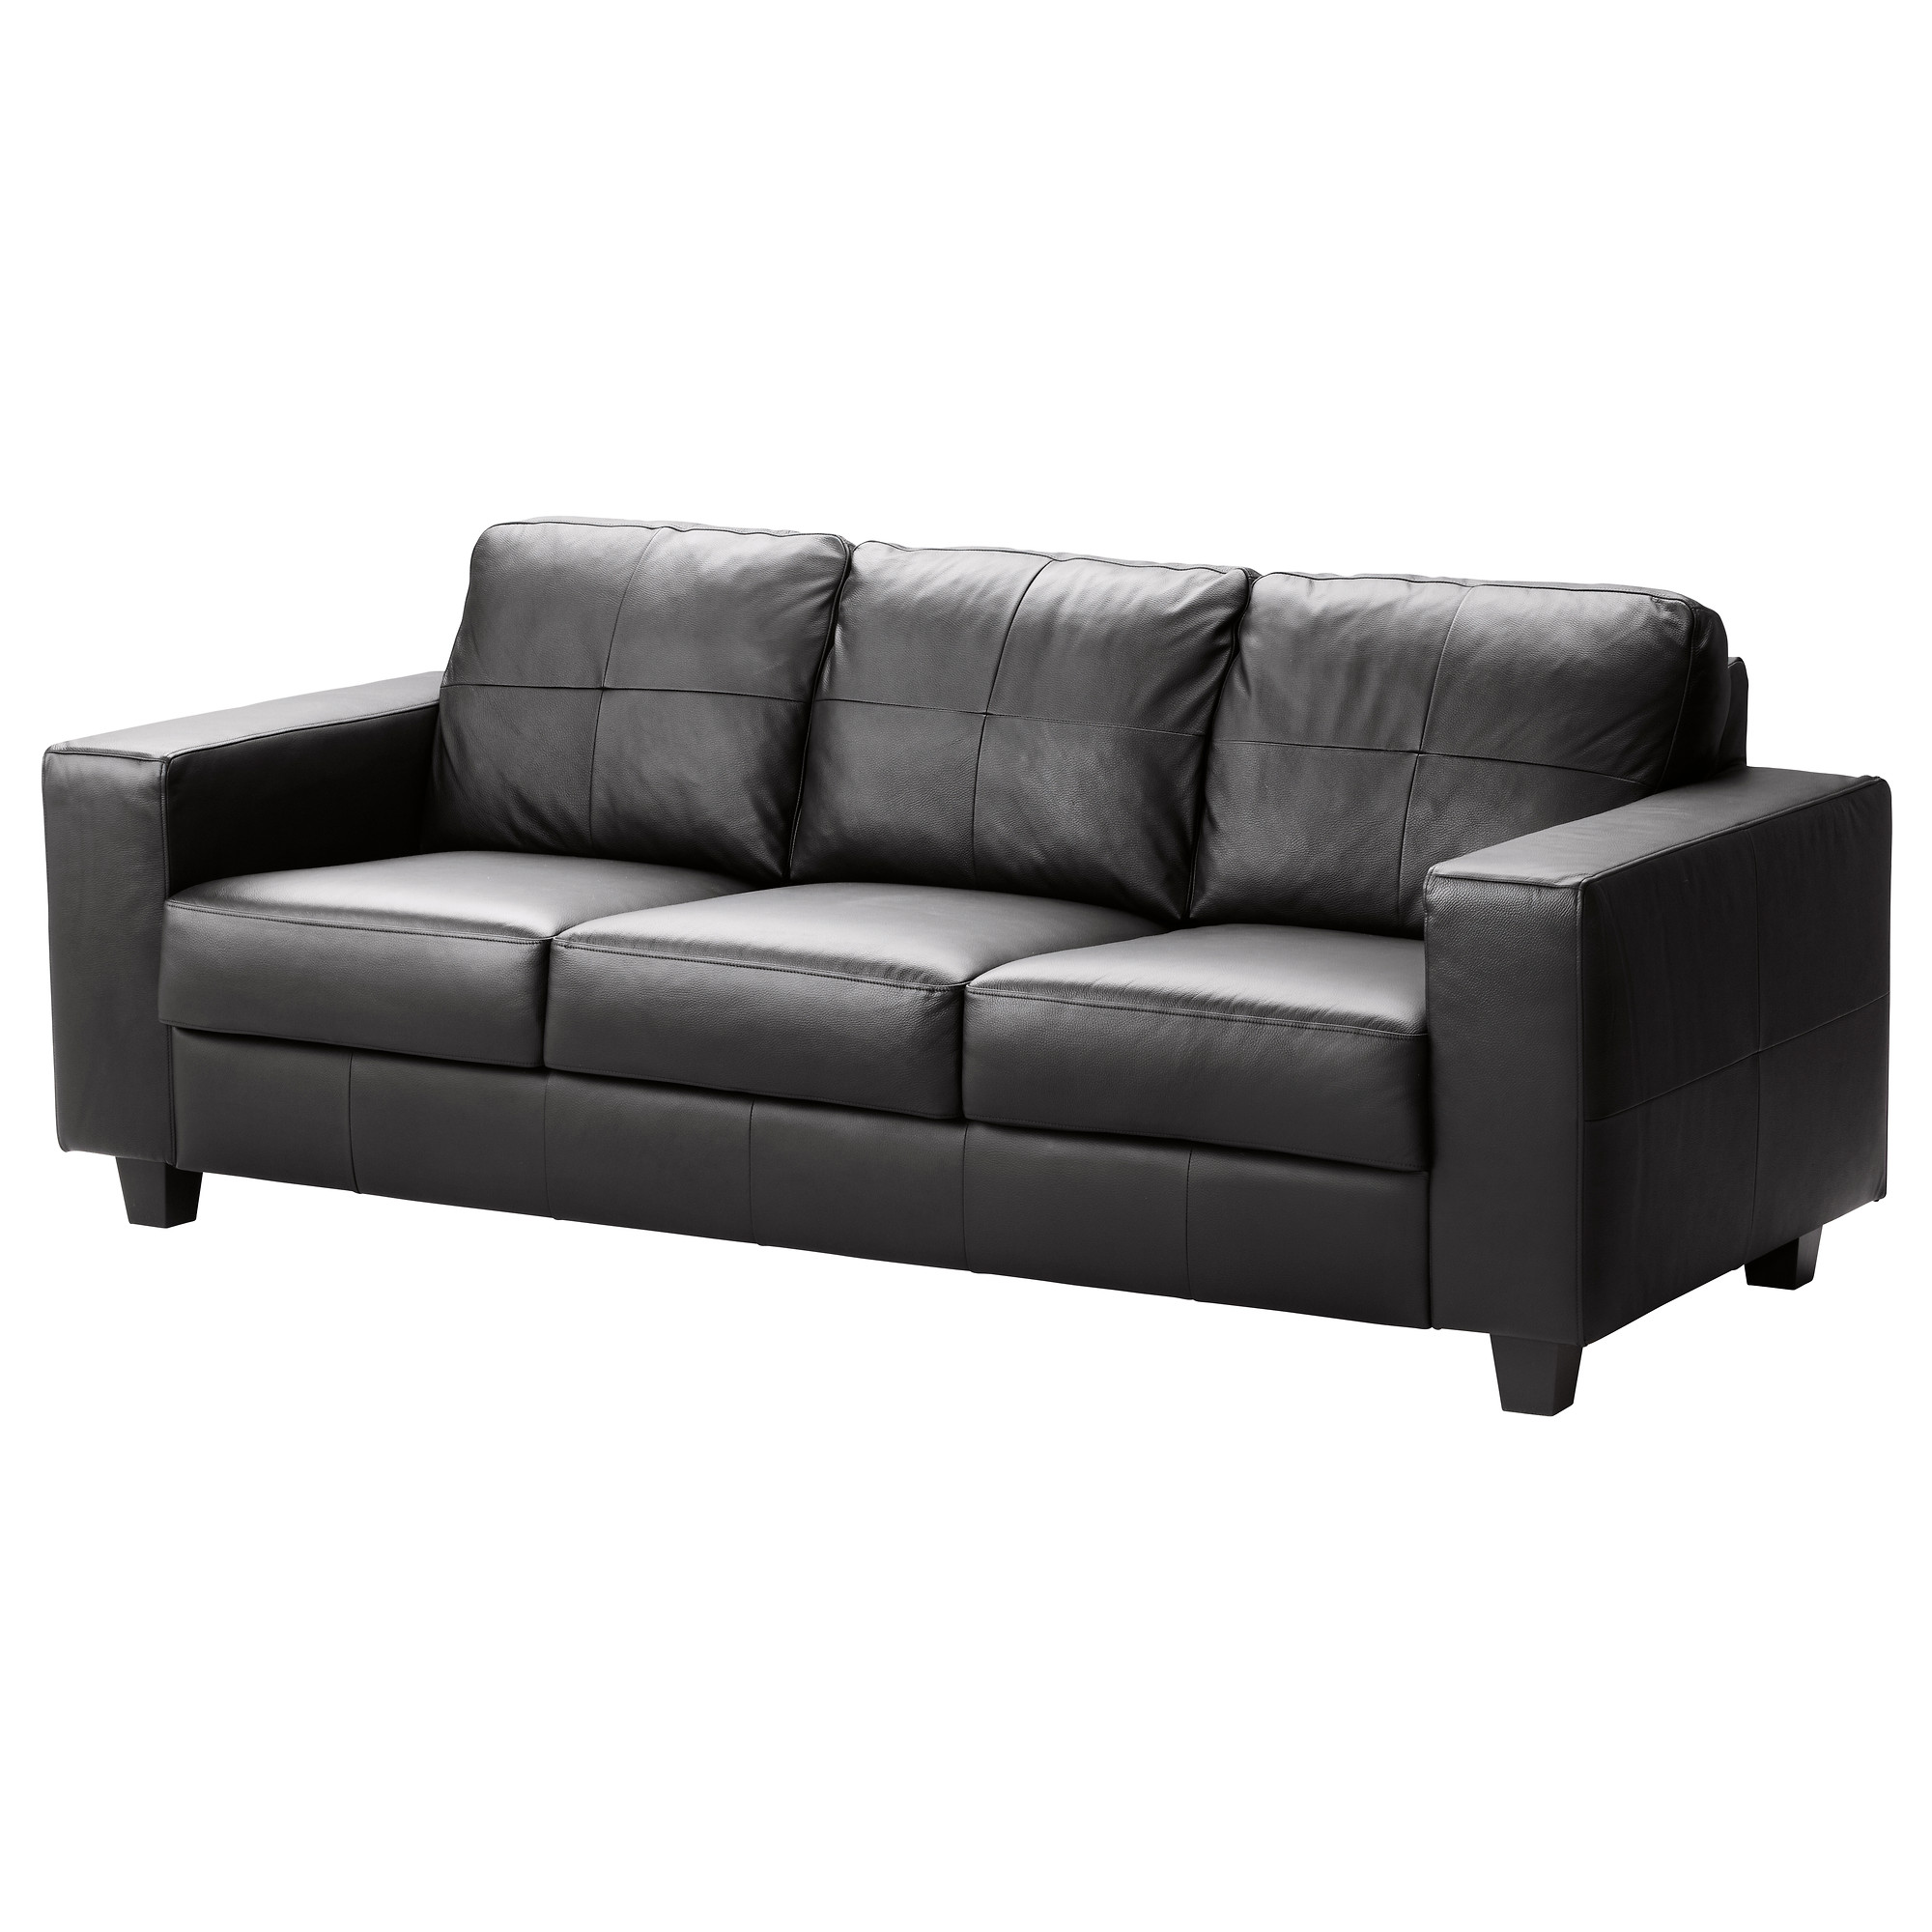 Leather/faux leather sofas - IKEA